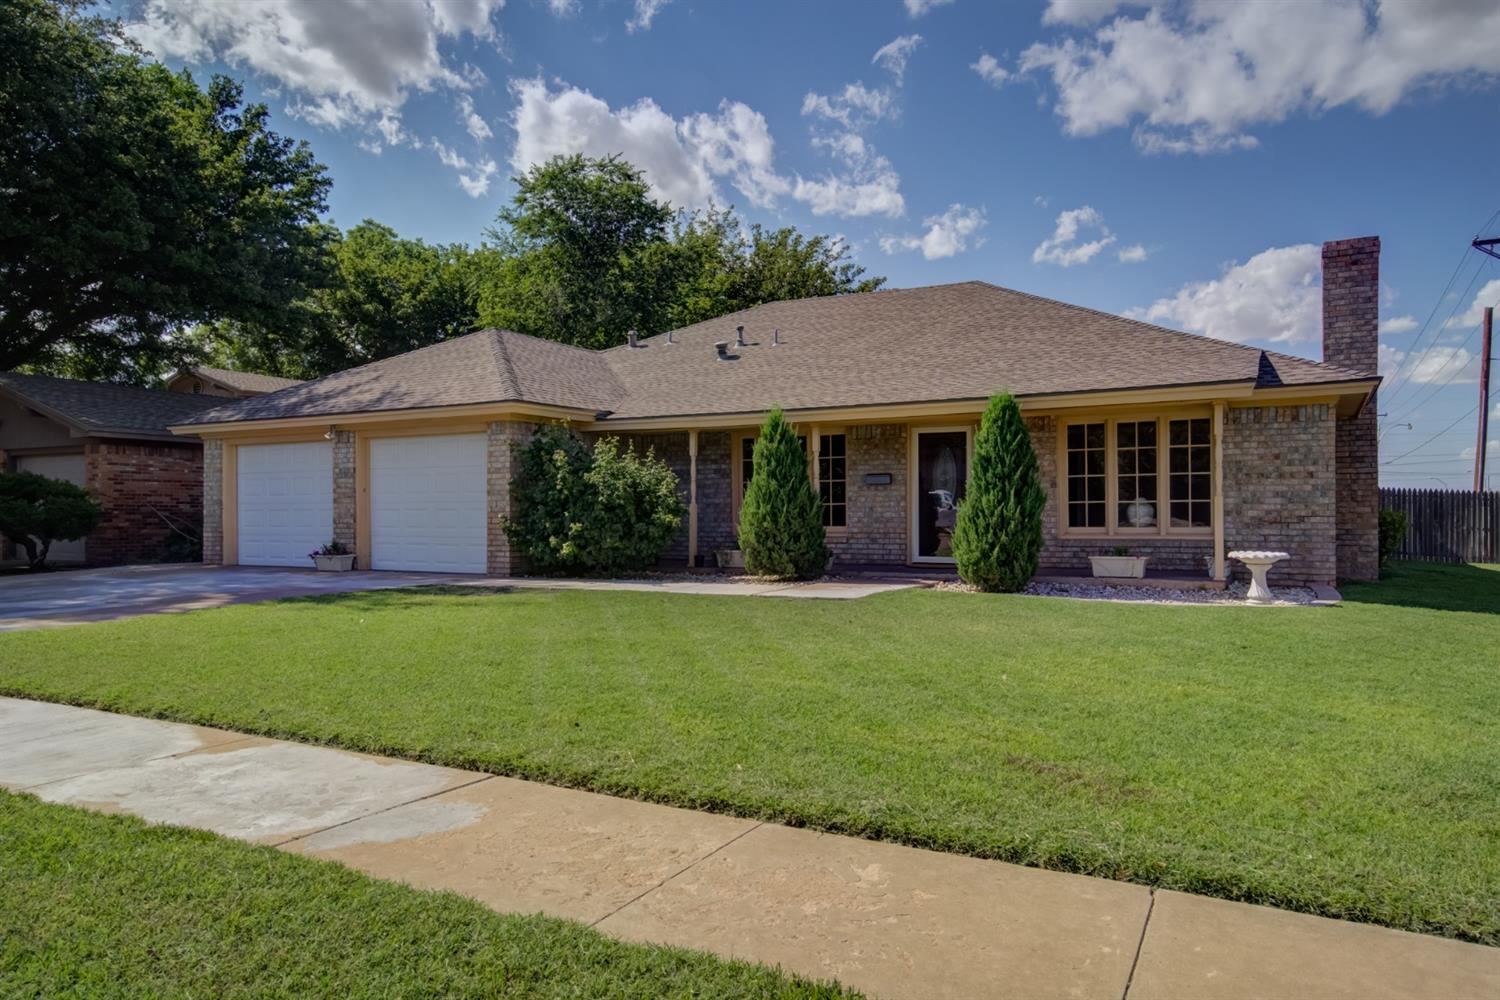 3402 75th Street, Lubbock in Lubbock County, TX 79423 Home for Sale